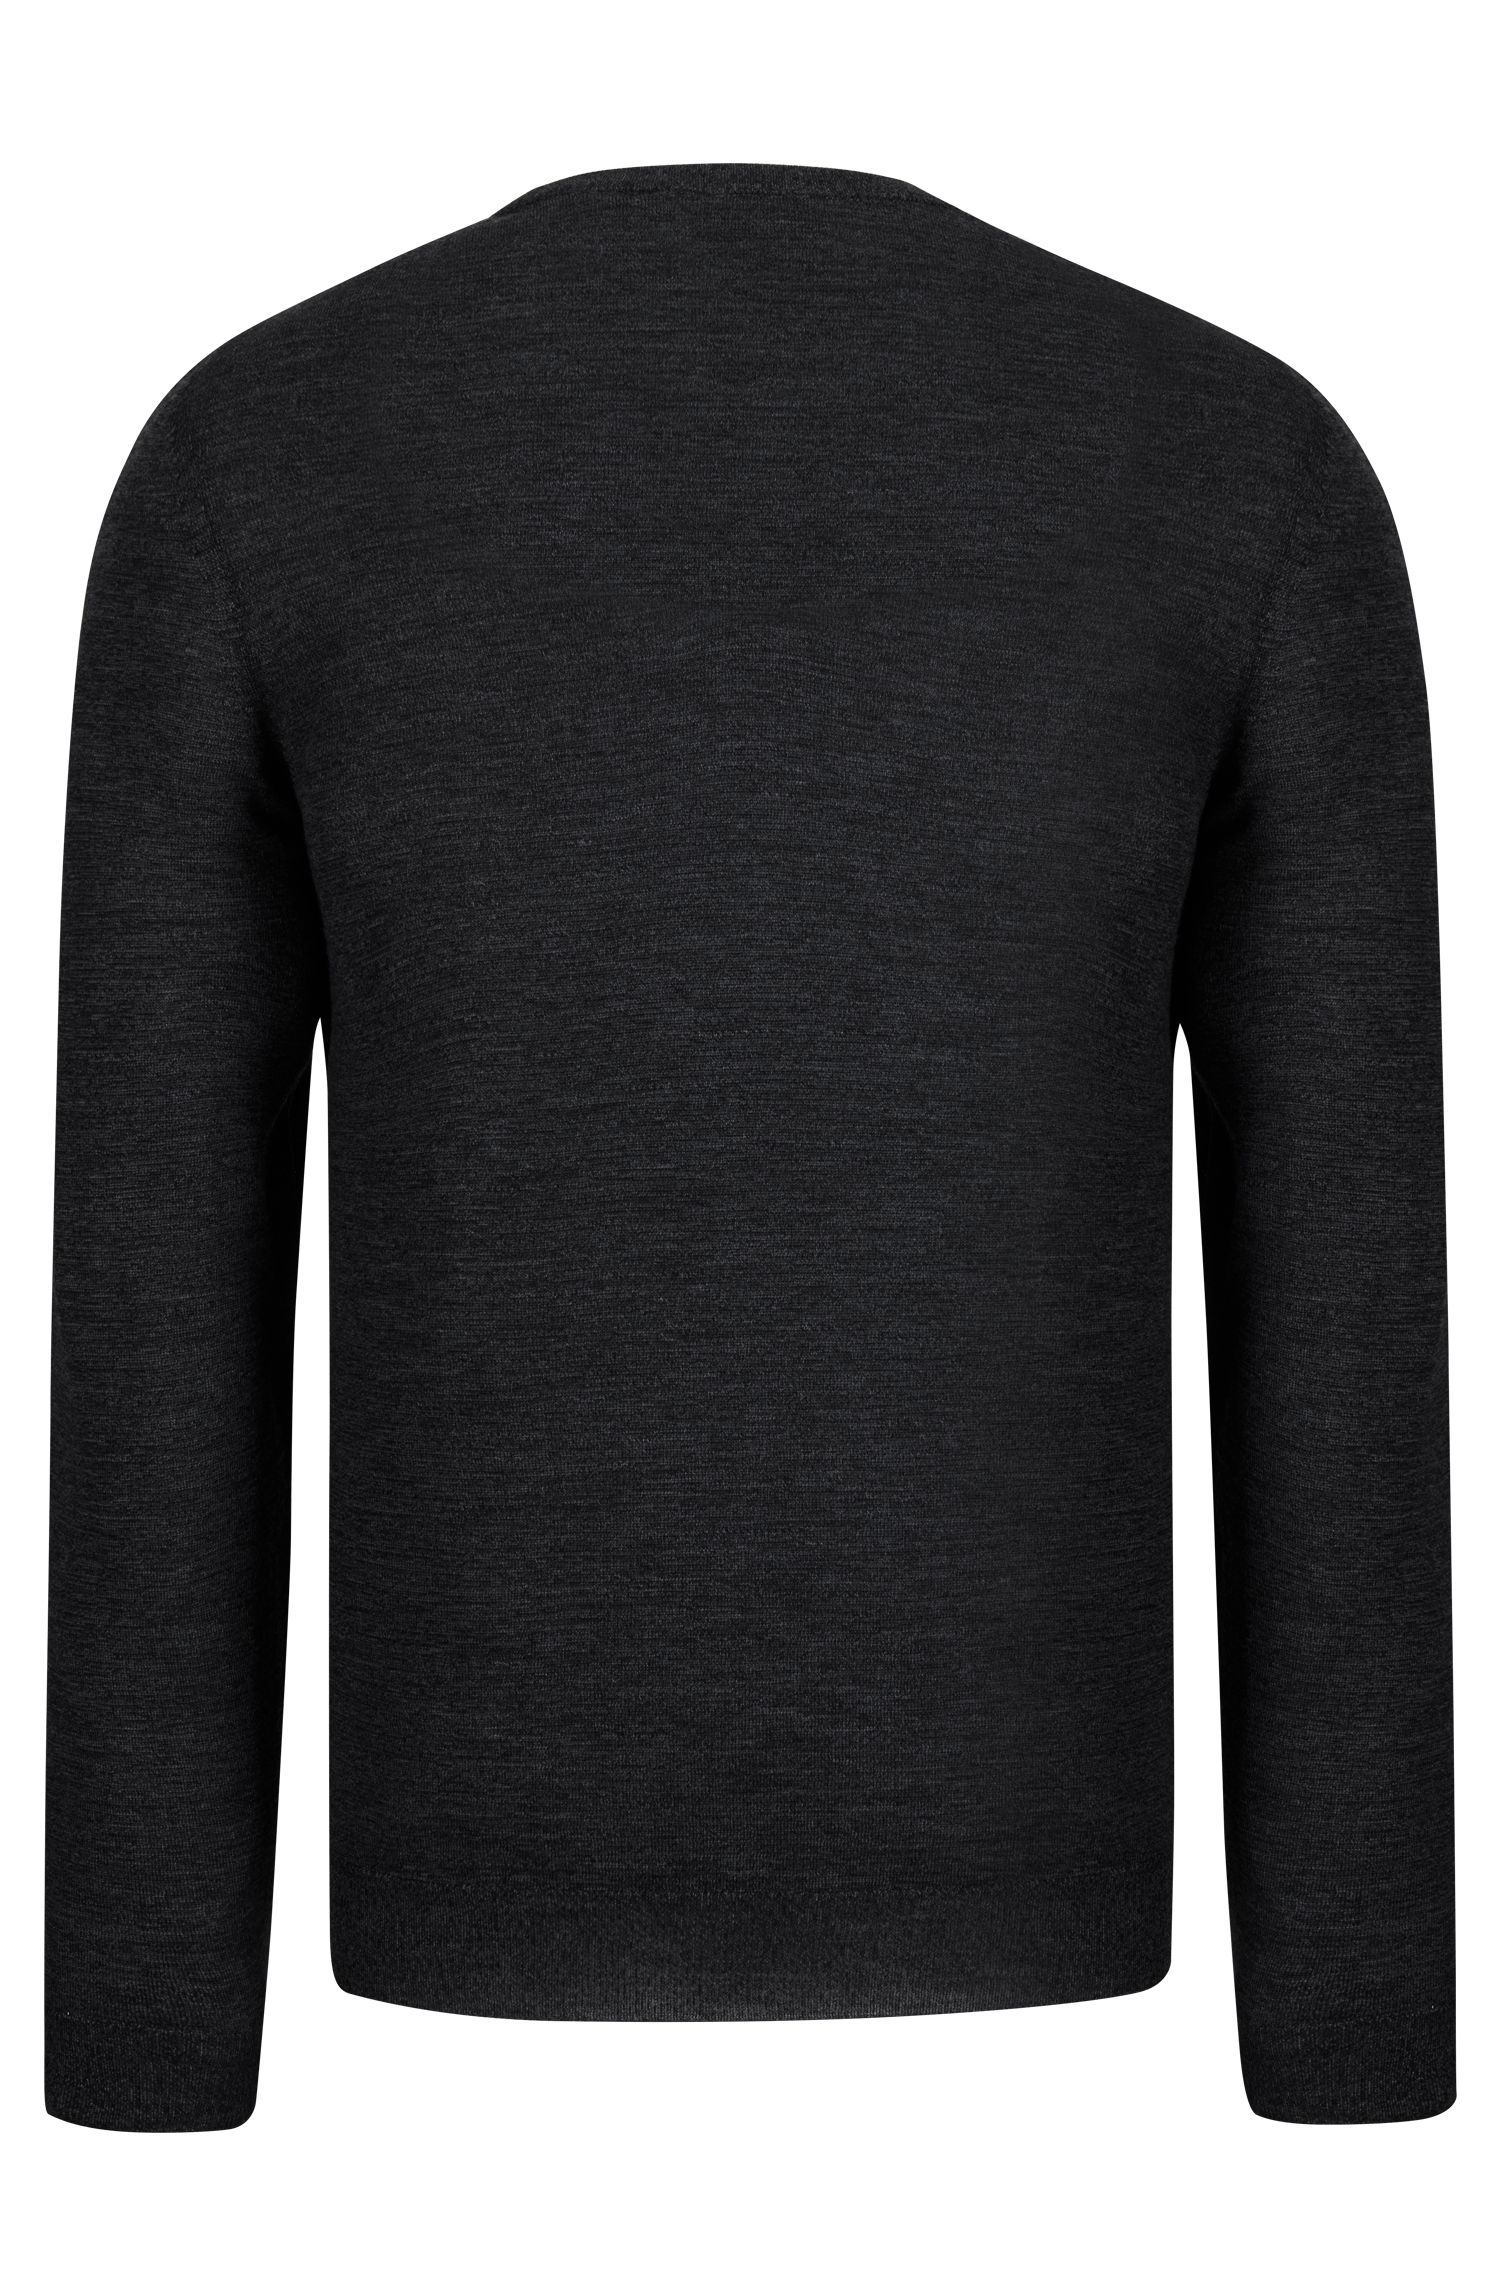 V-Neck Wool Sweater | 'Melba', Black